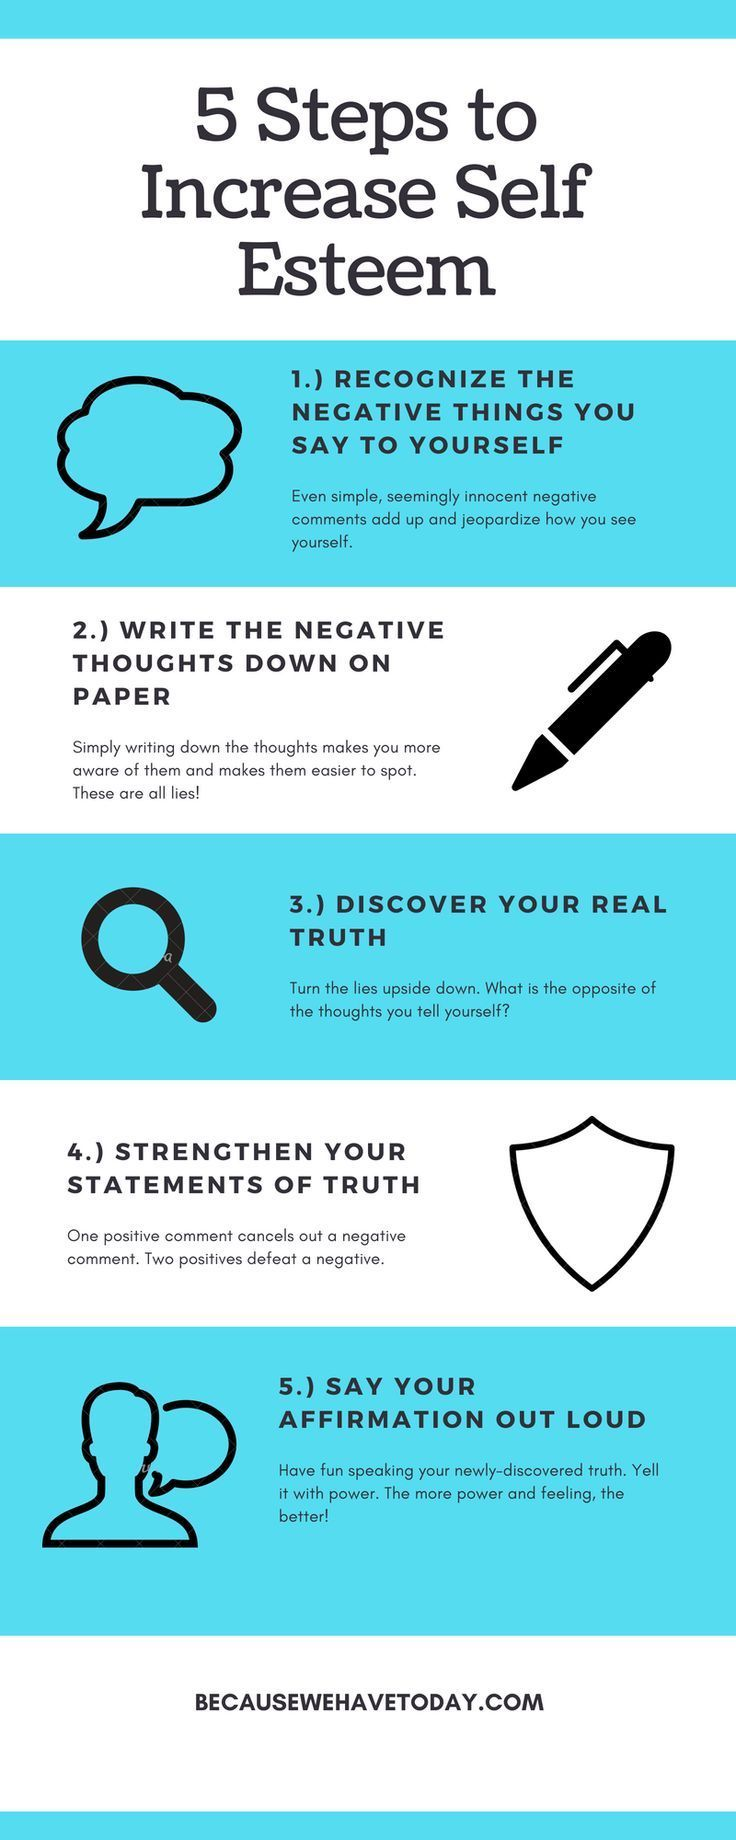 5 Steps To Increase Self Esteem Why Positive Affirmations Are Powerful Self Esteem Activities Self Esteem Quotes Self Confidence Tips